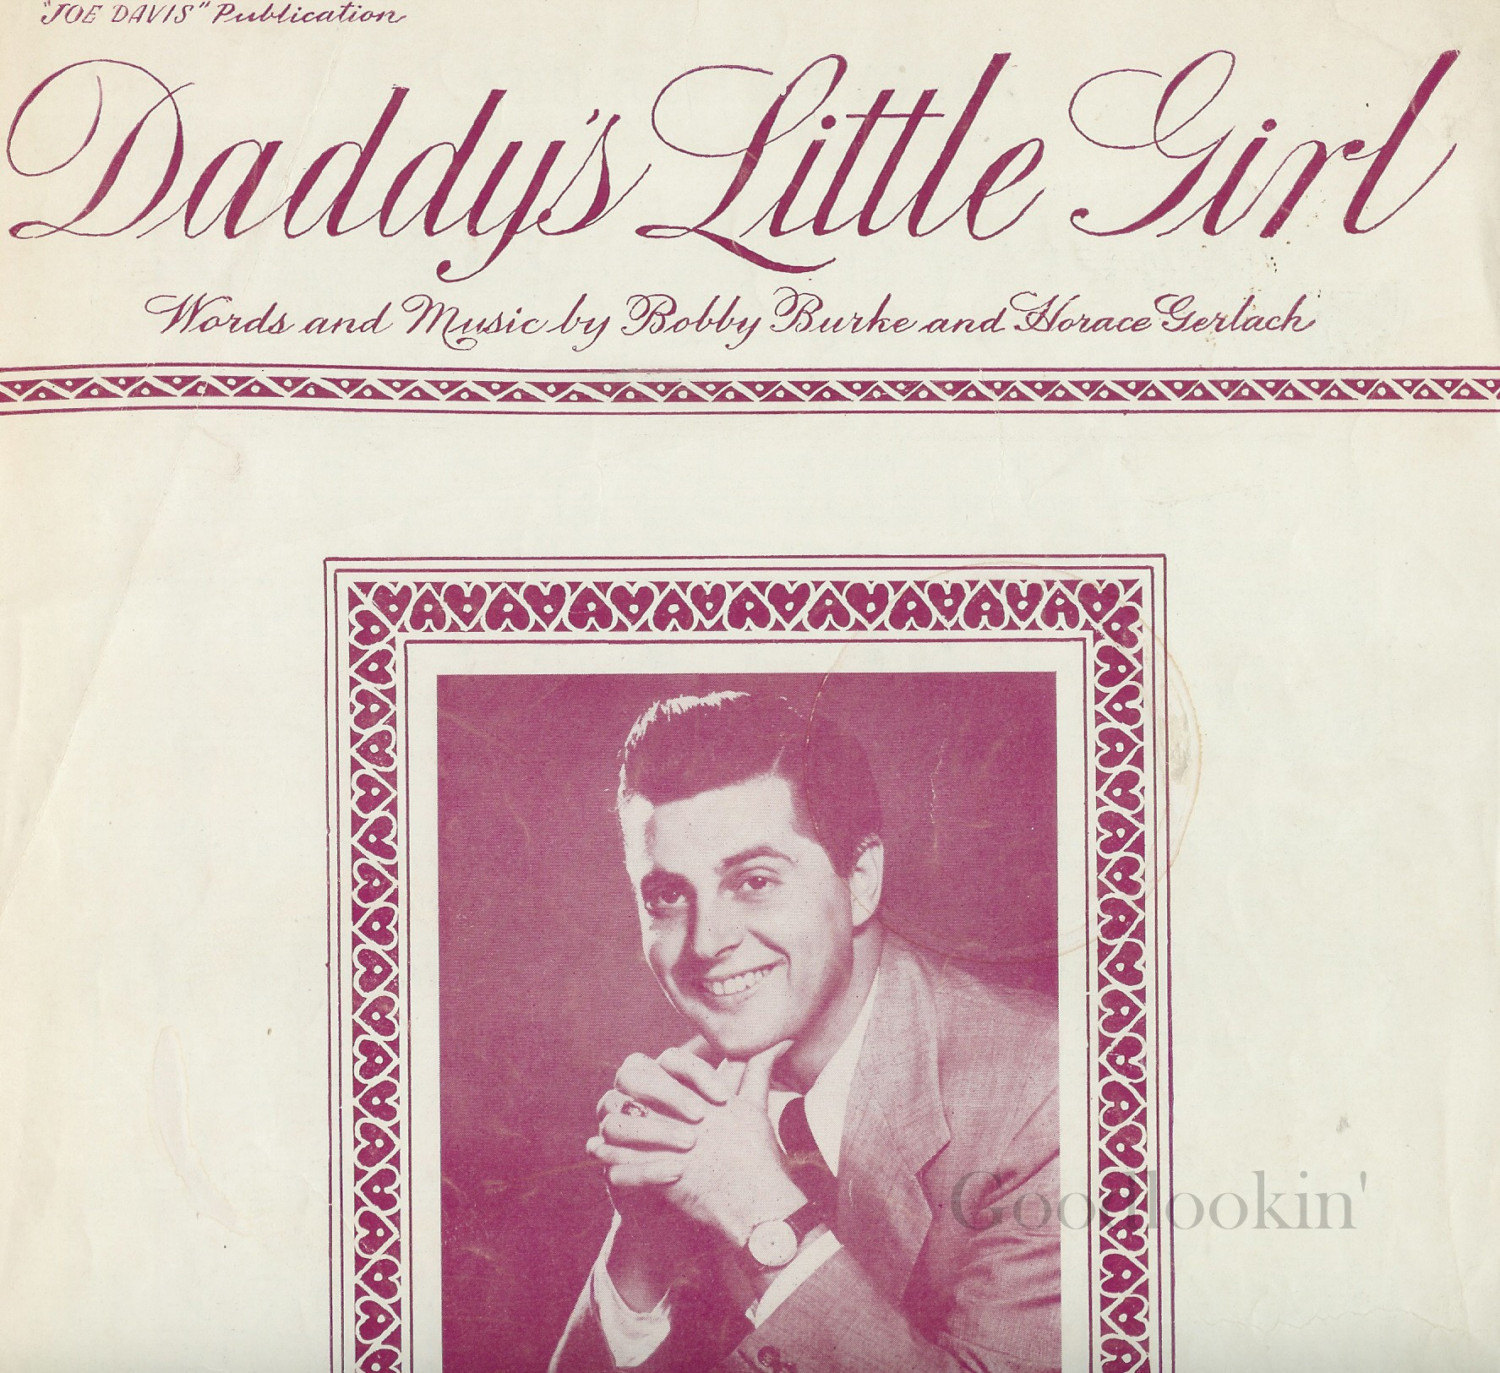 Daddy's Little Girl - 1949 Sheet Music